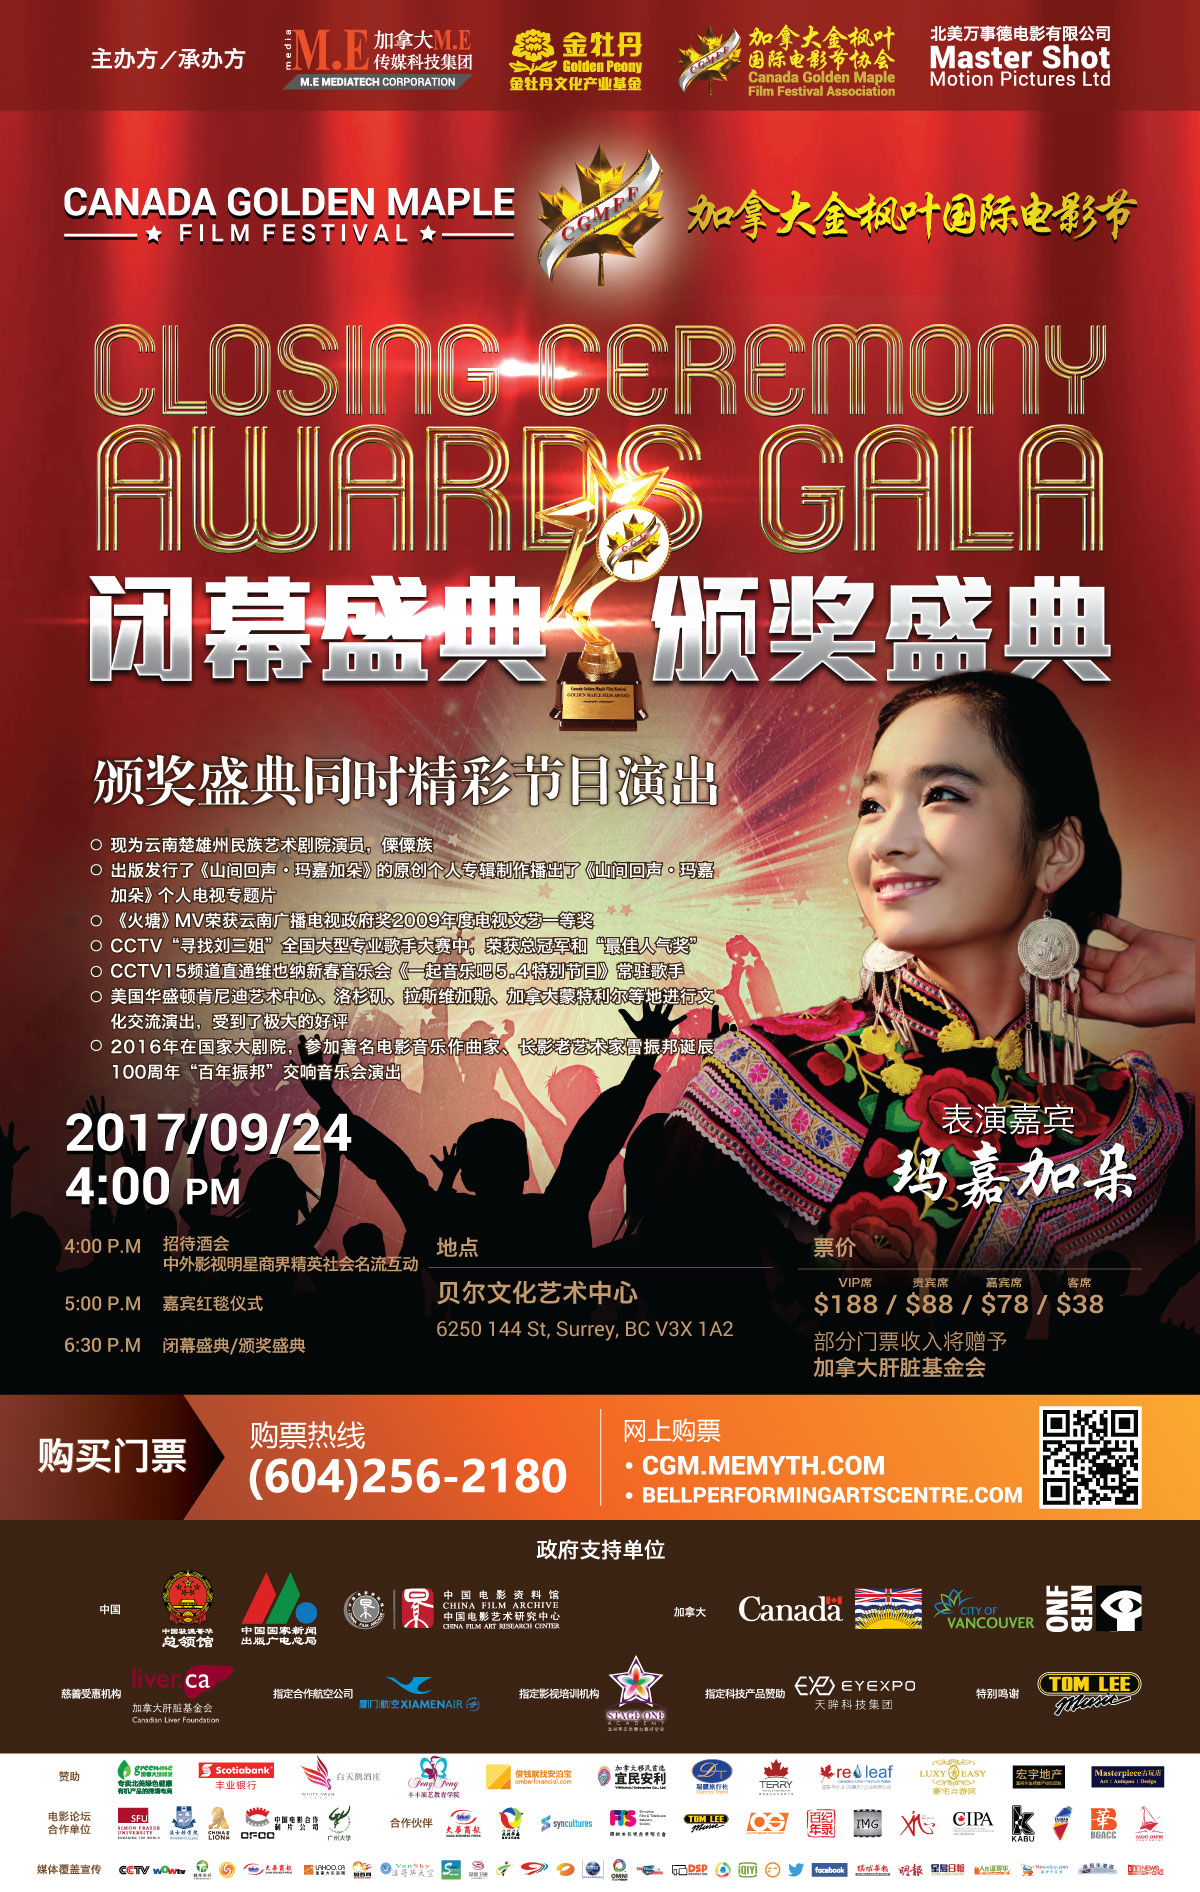 2017 Canada Golden Maple Film Festival Poster Majiajiaduo in Chinese